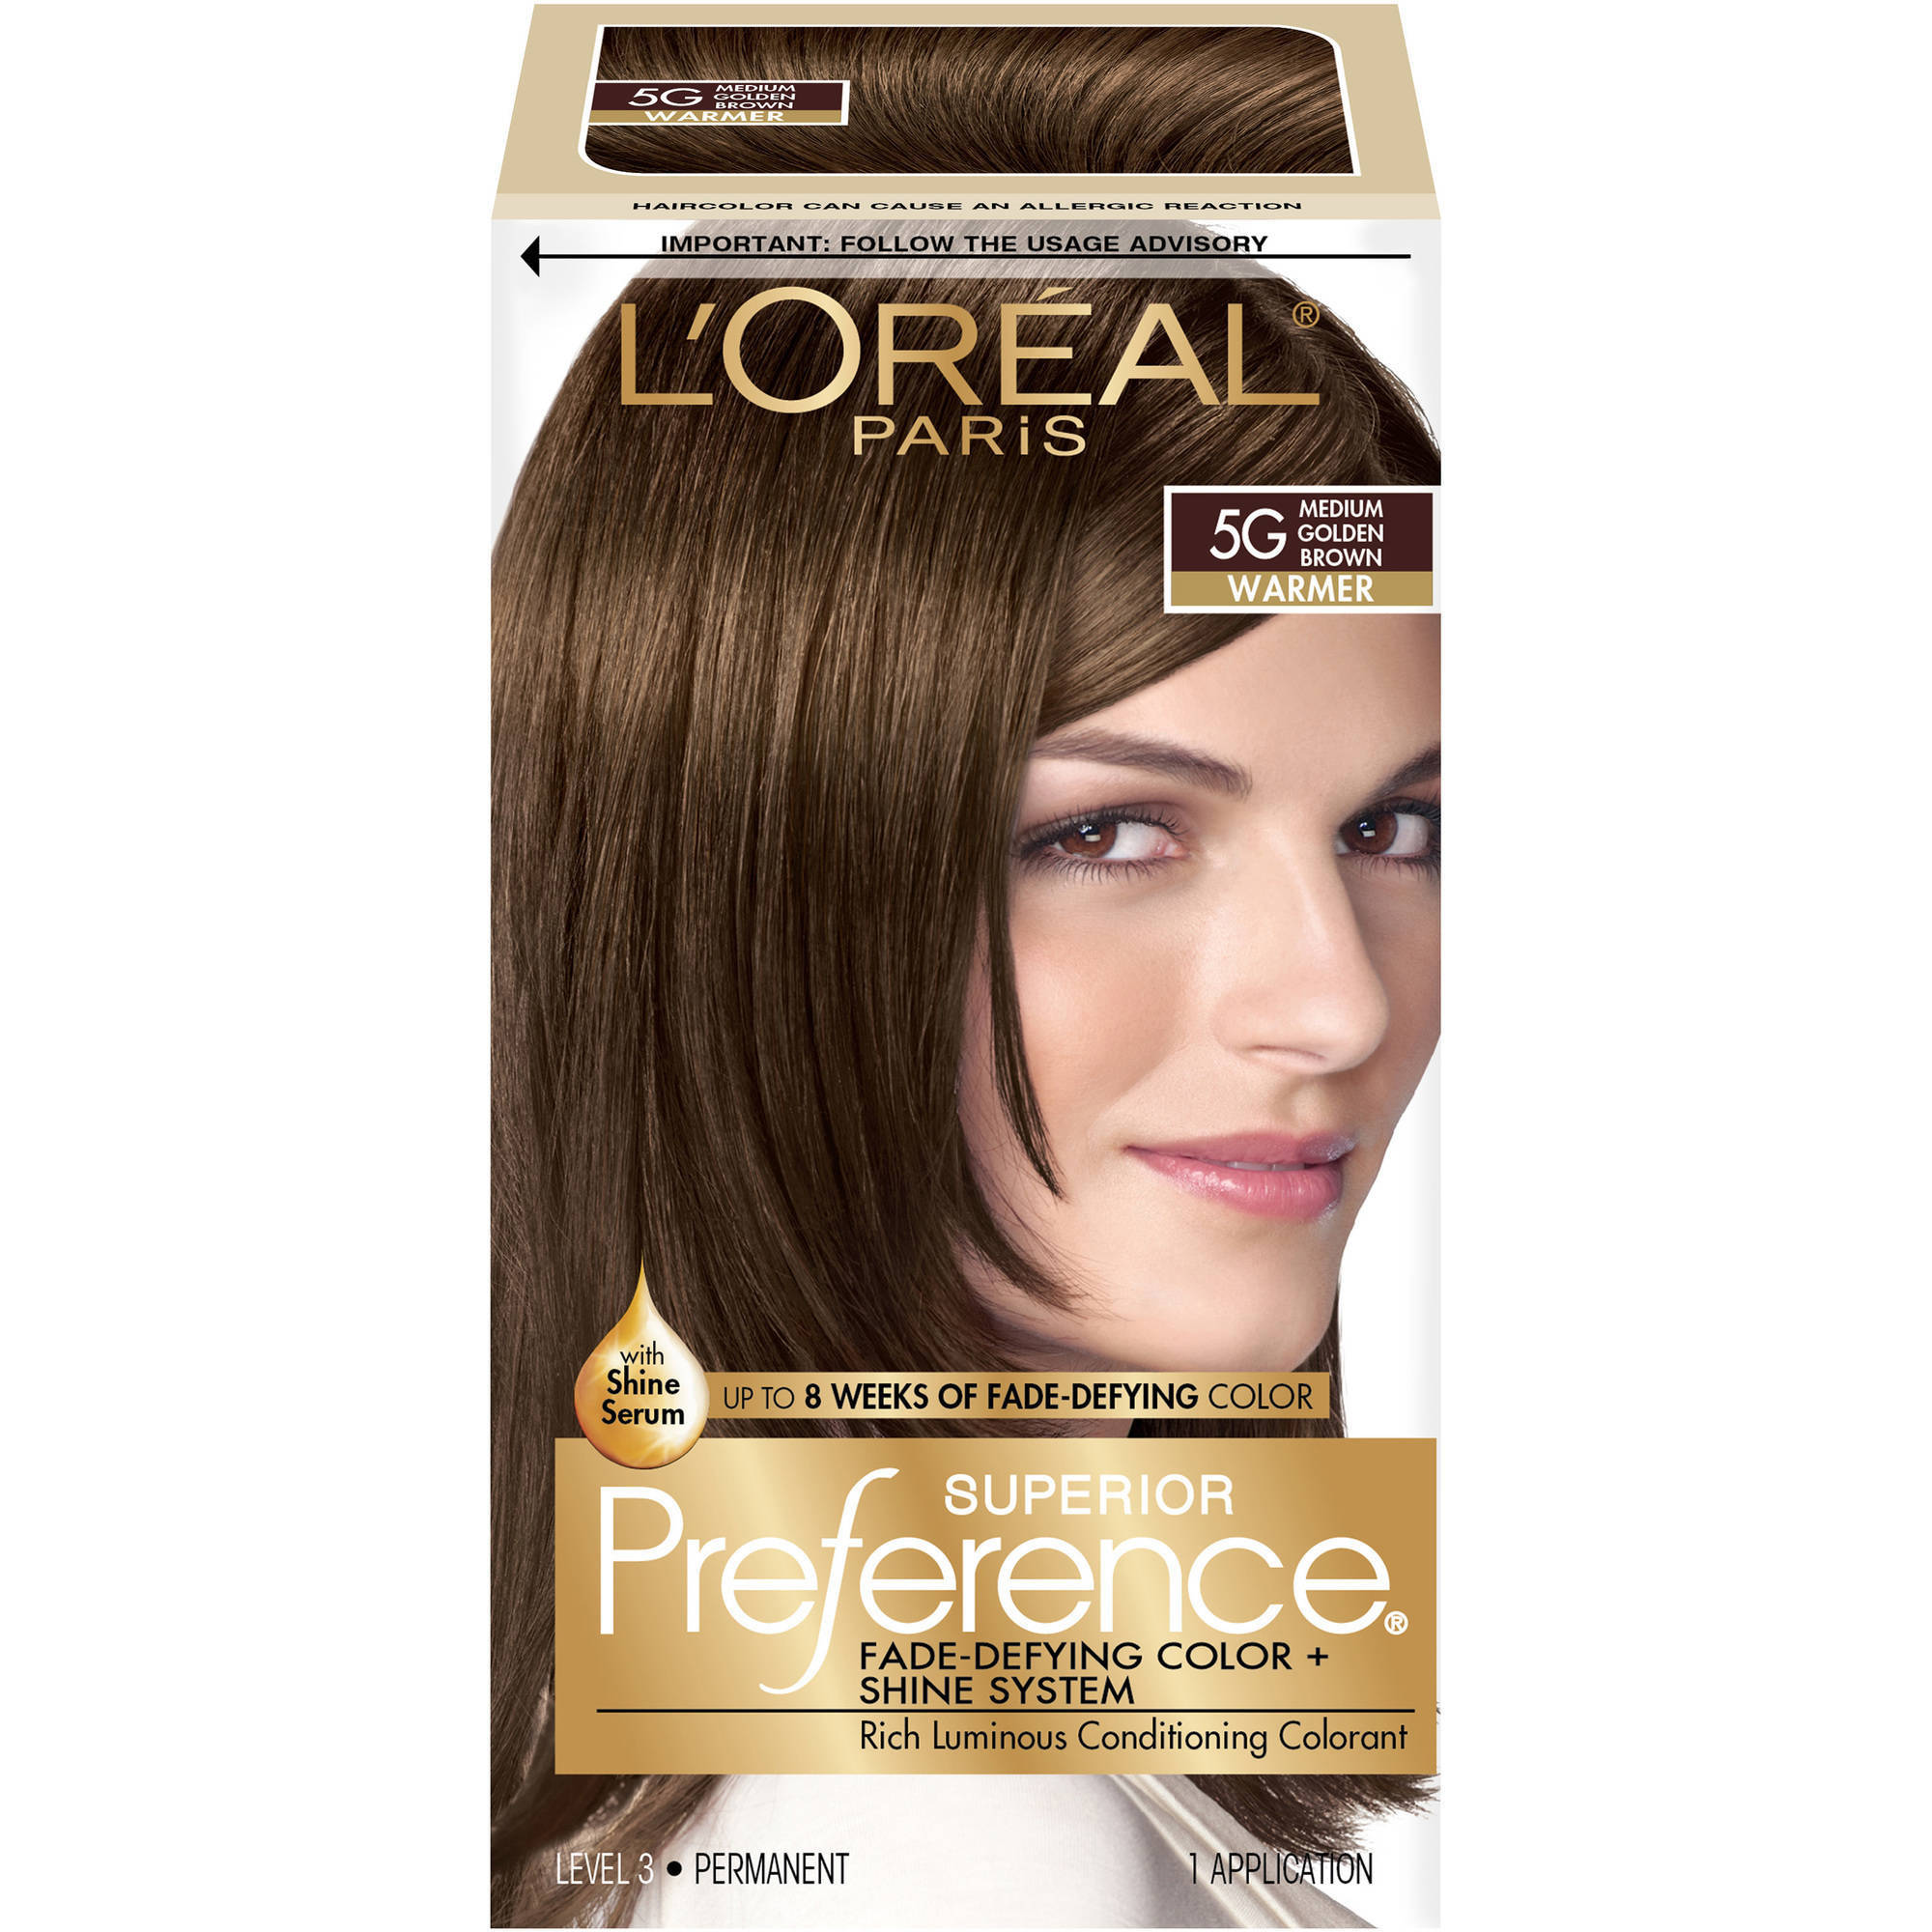 L'Oreal Paris Superior Preference Fade-Defying Color + Shine Hair Color, 5G Medium Golden Brown